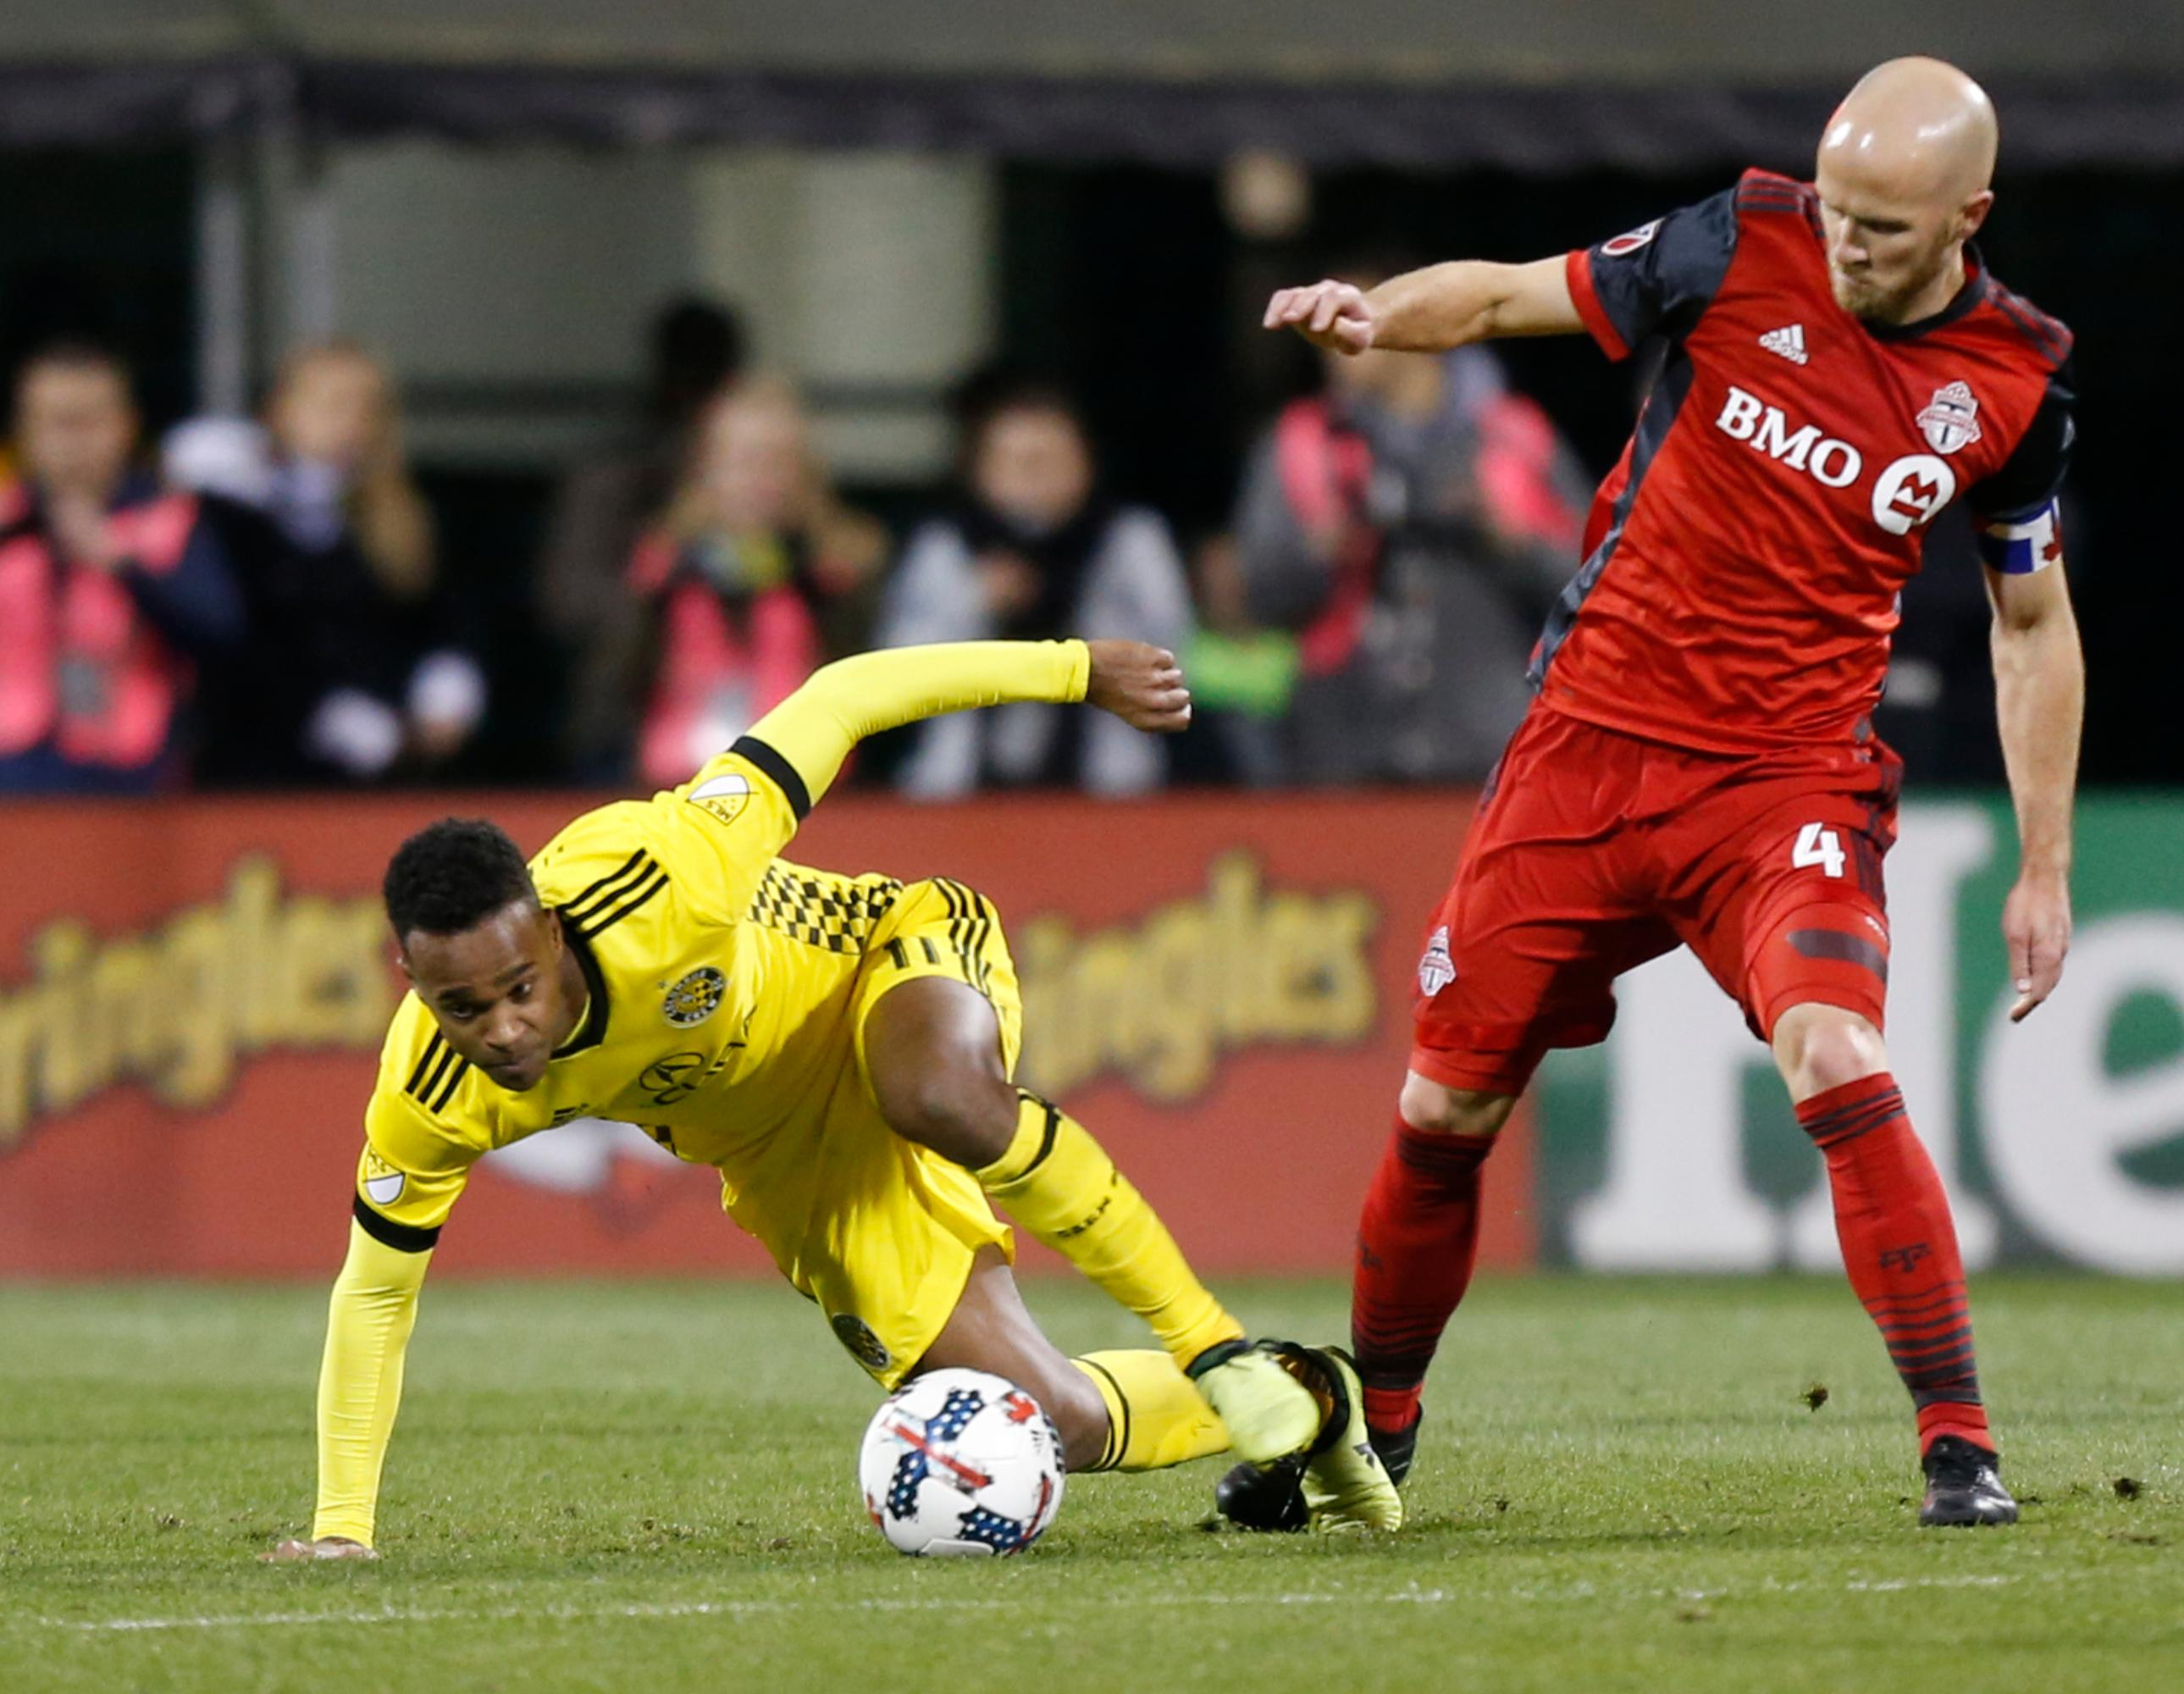 Columbus Crew's Ola Kamara, left, falls the the ground while trying to kick the ball away from Toronto FC's Michael Bradley during the second half of an MLS Eastern Conference championship soccer match Tuesday, Nov. 21, 2017, in Columbus, Ohio. The match ended in a 0-0 tie. (AP Photo/Jay LaPrete)